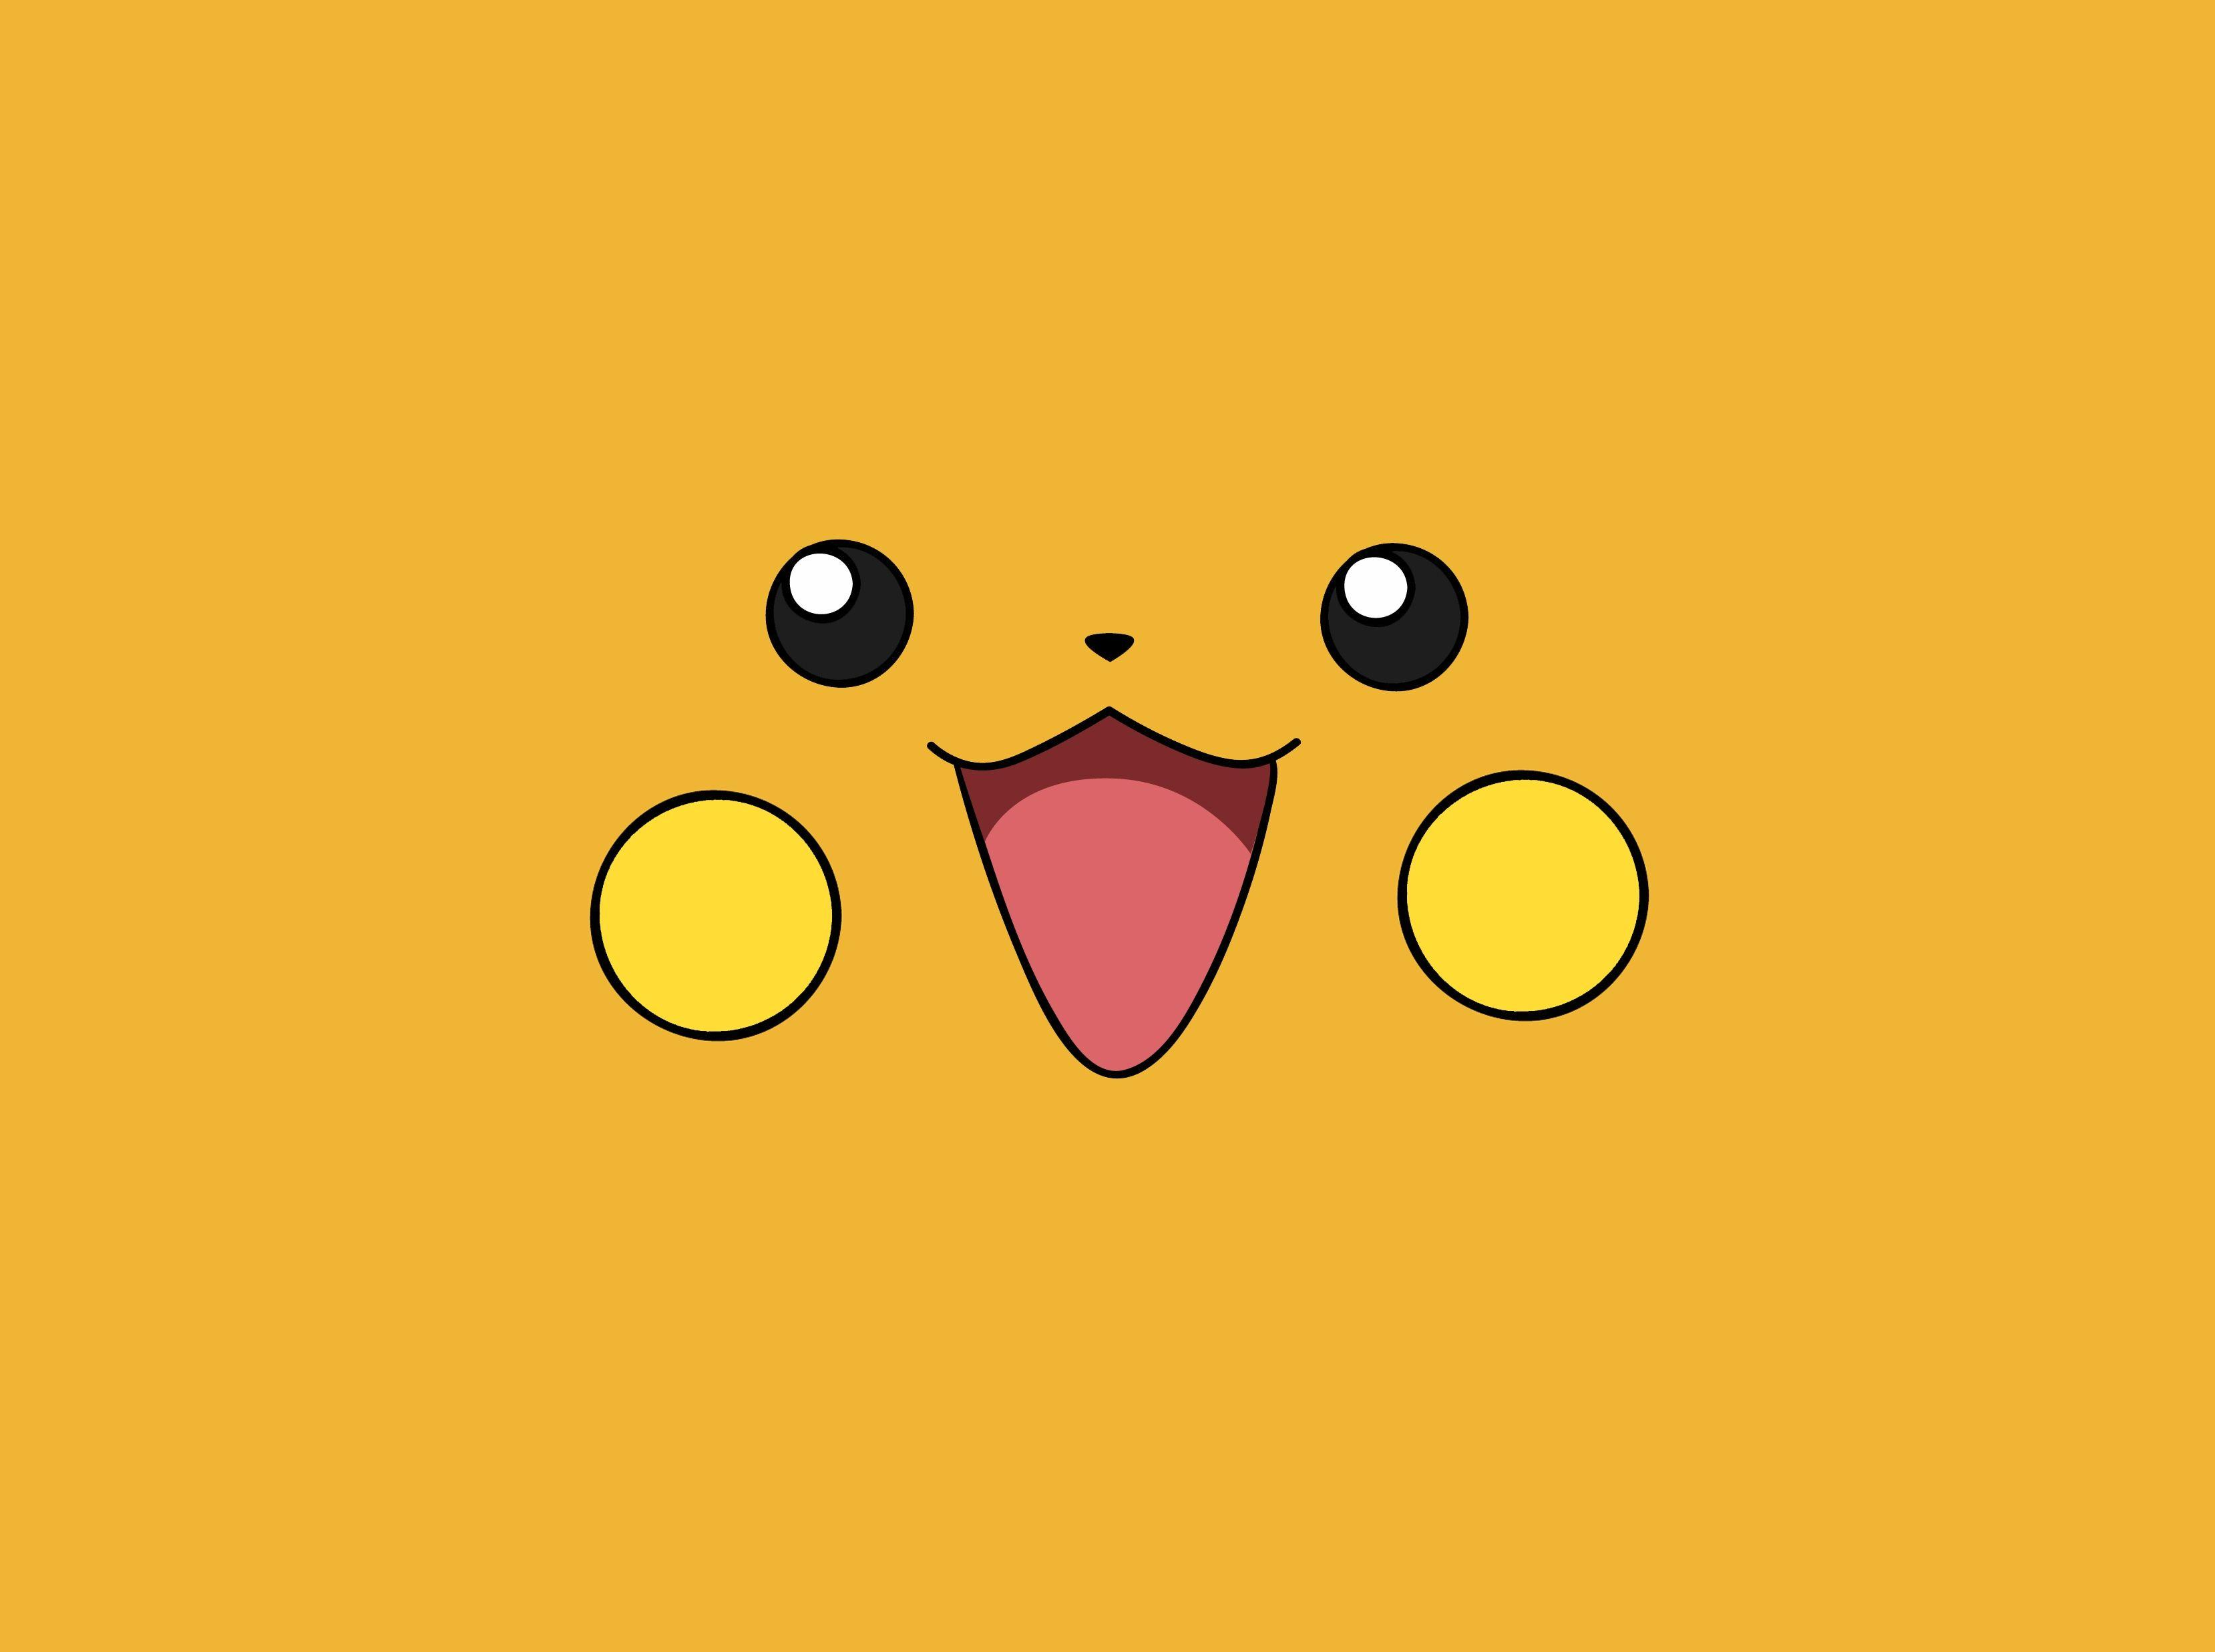 pokemon yellow raichu anime faces simple 3317x2474 wallpapers High